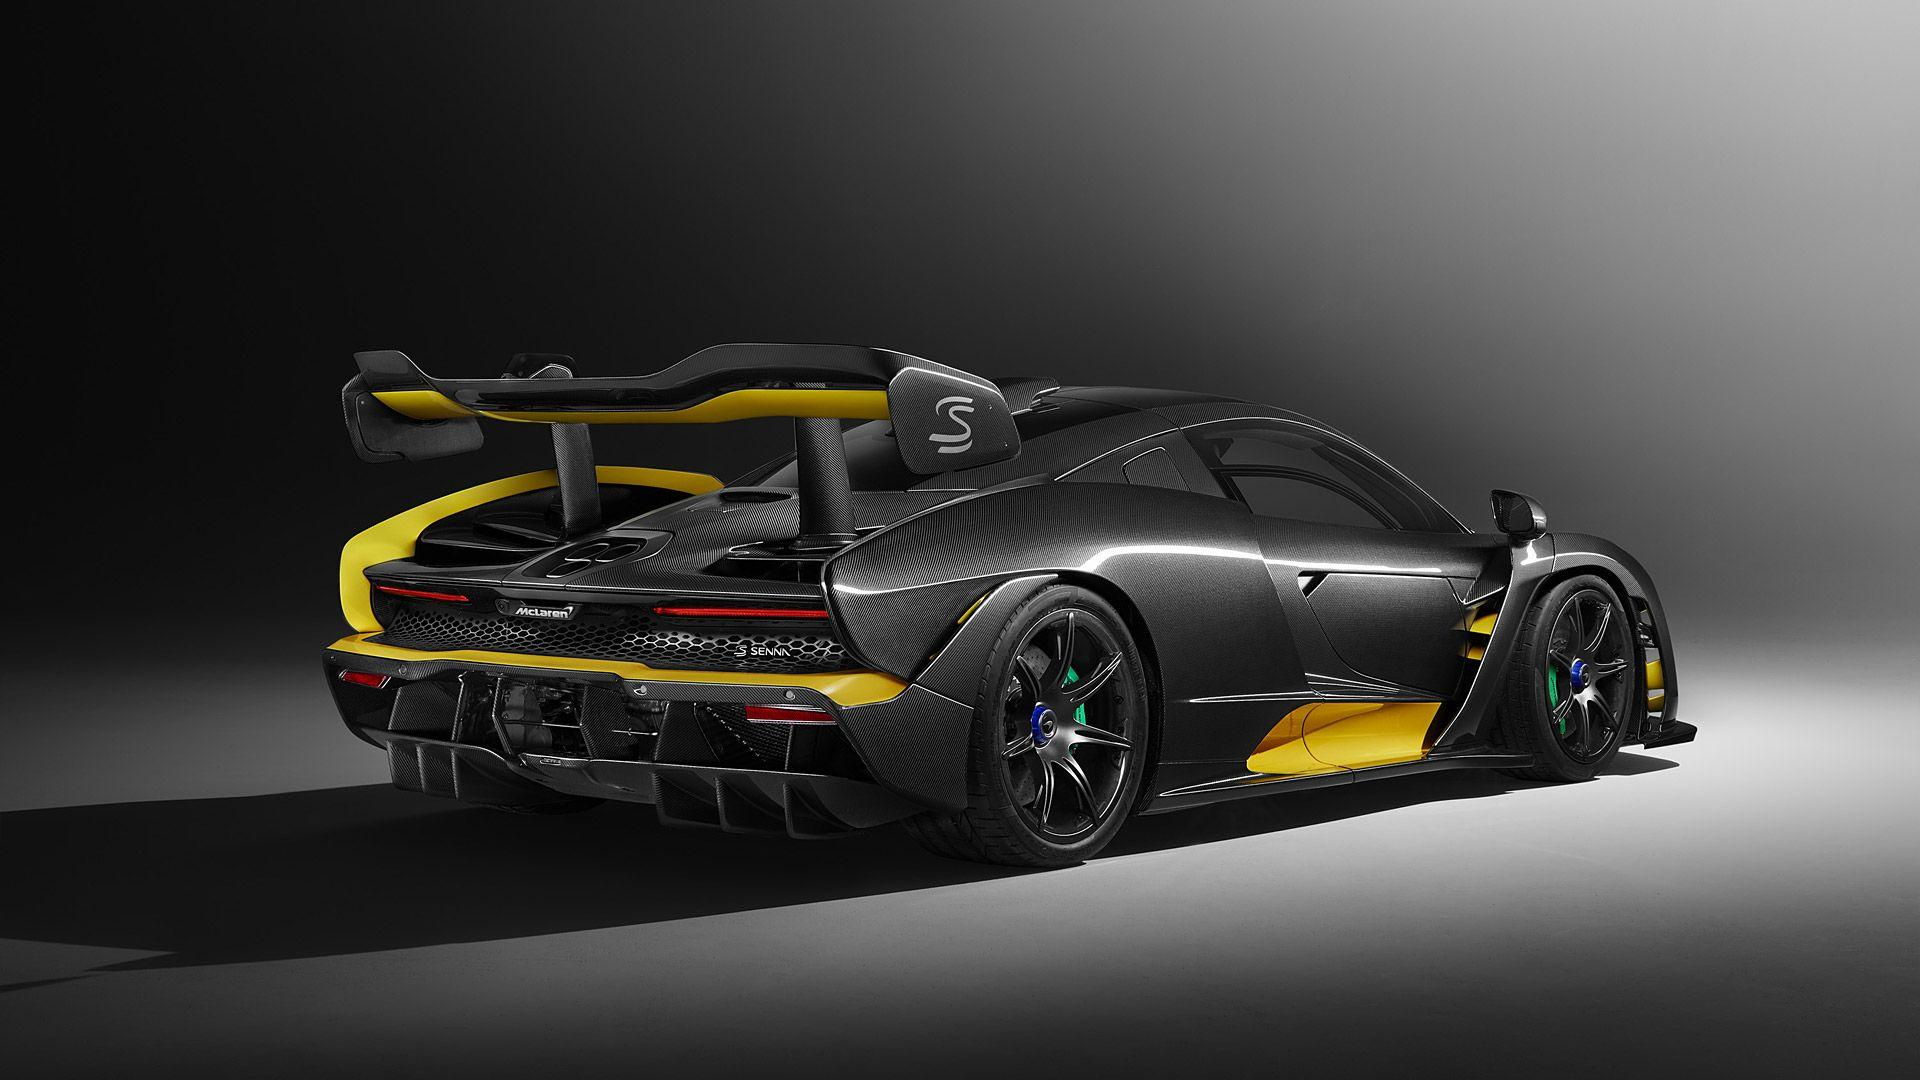 2019 McLaren Senna Carbon Theme by MSO Wallpapers & HD Images ...